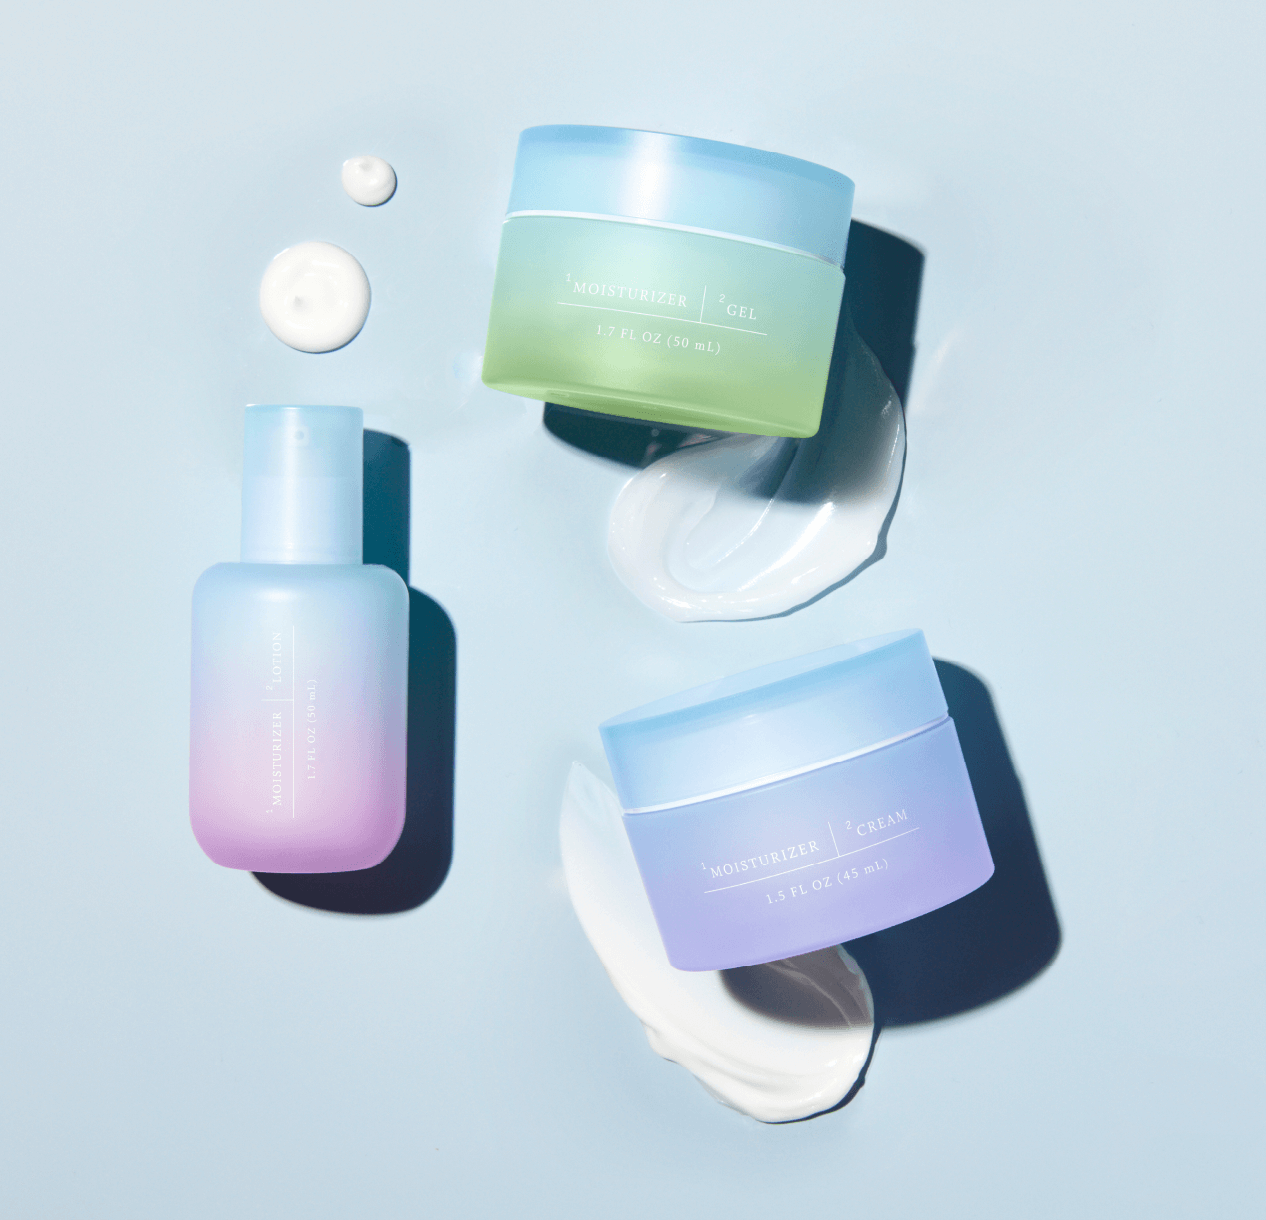 The moisturizing gel, cream, and lotion which come in ombre blue, purple, and green containers